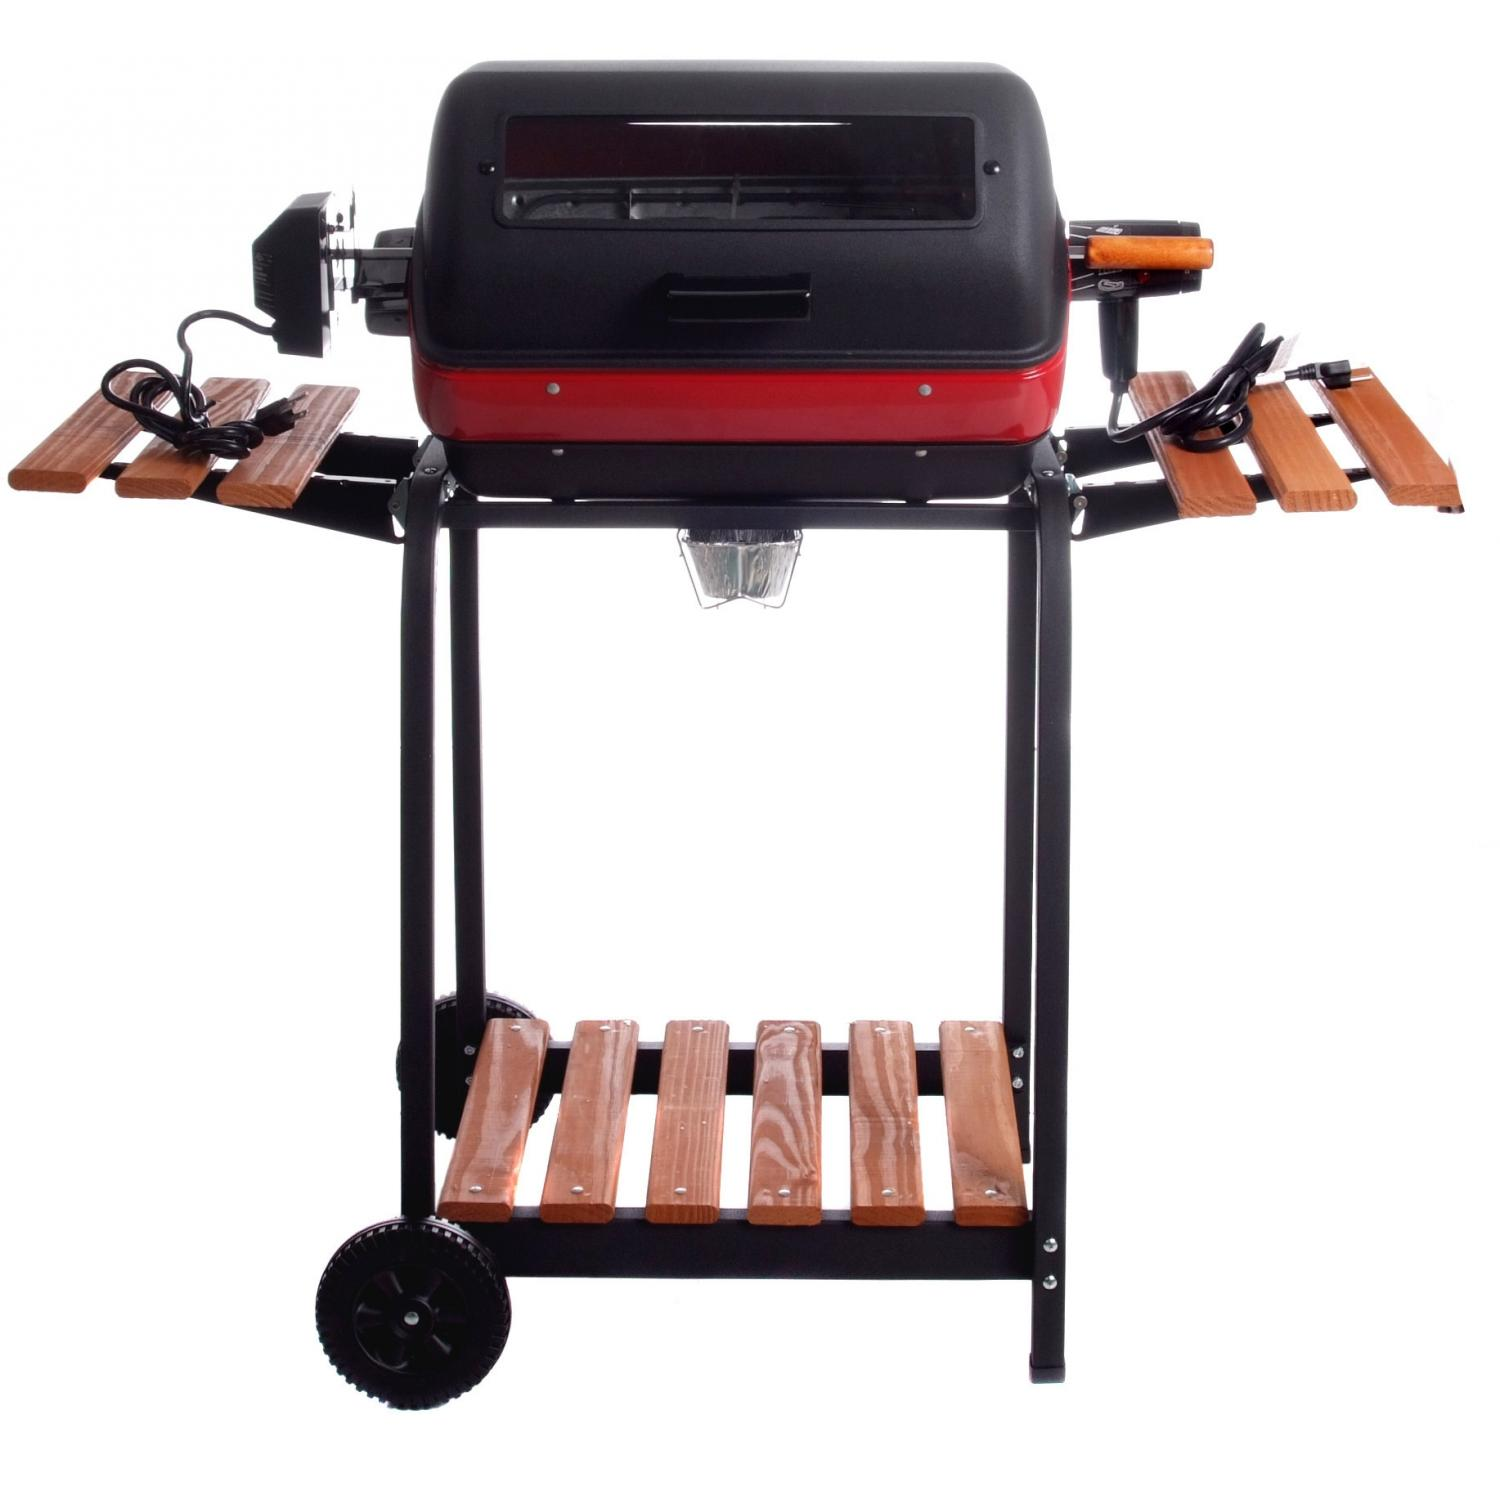 Meco Electric Grill On Cart With Rotisserie And Fold Down Side Tables - 9329W 473